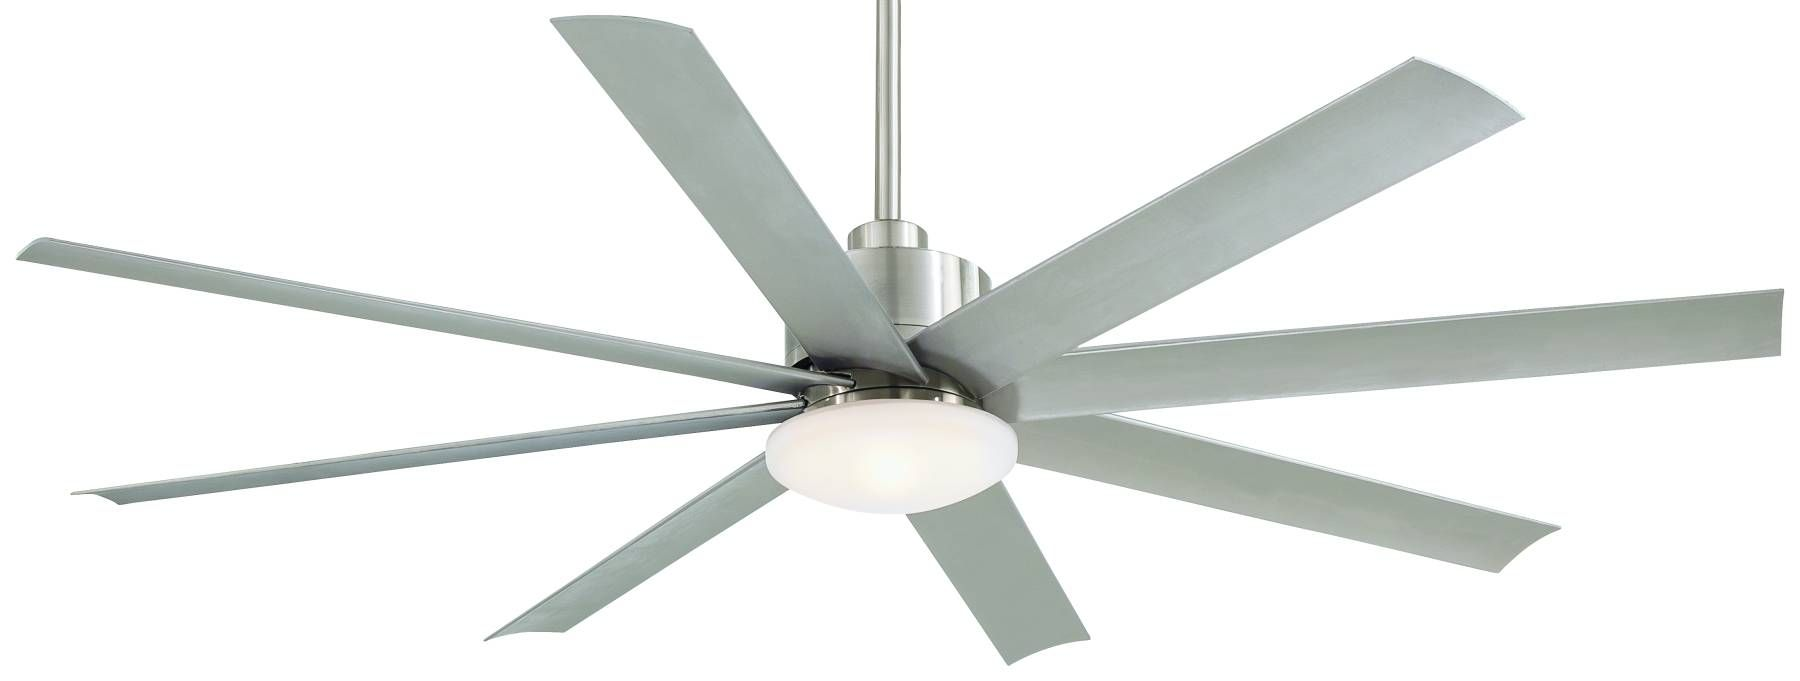 Minka Aire Slipstream Mf F888 Bnw Airflow Rating 8778 Cfm Cubic Feet Per Minute With Images Ceiling Fan Minka Aire Ceiling Fan Led Ceiling Fan